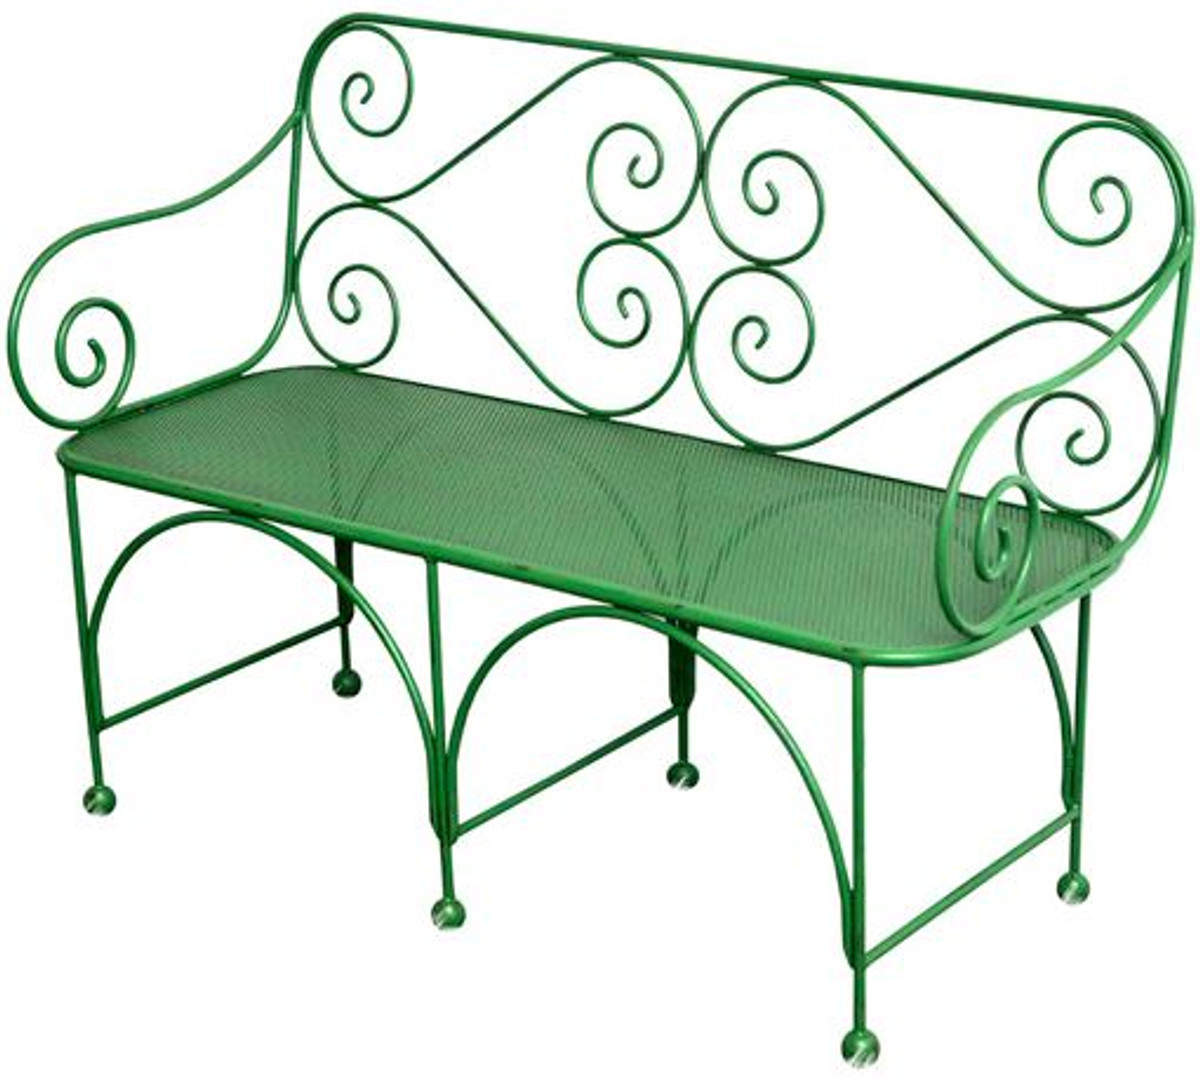 Casa Padrino Garden Bench With Perforated Seating Area Art Deco Furniture